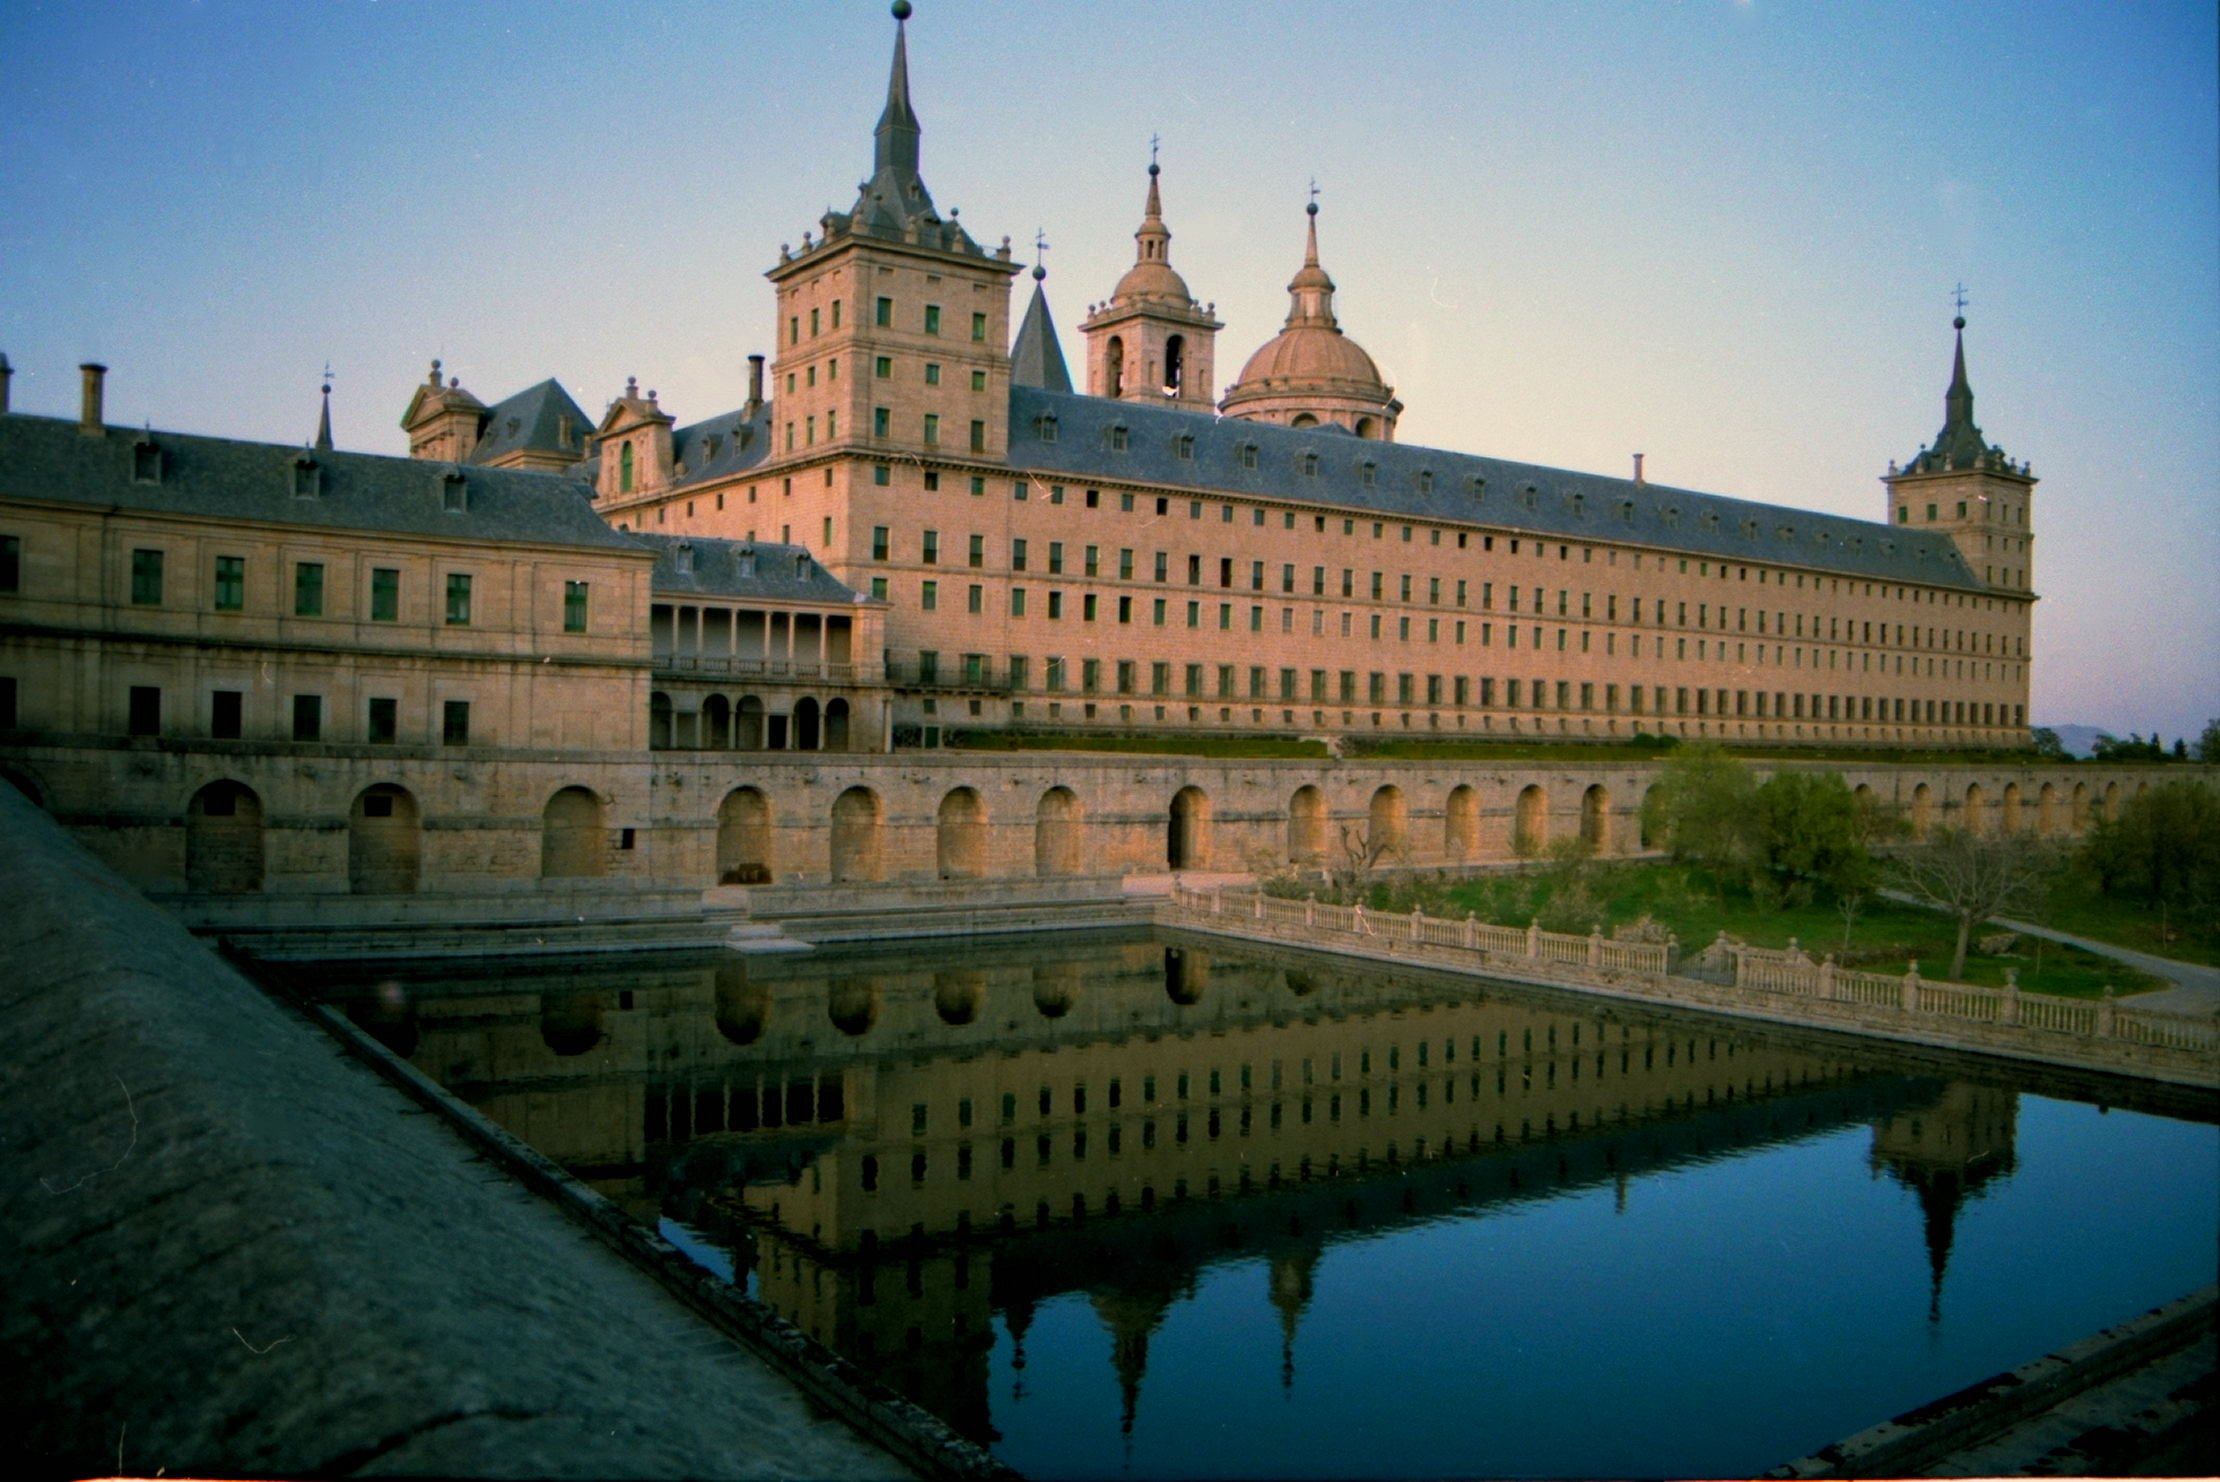 File:Monastery of San Lorenzo de El Escorial.jpg - Wikipedia